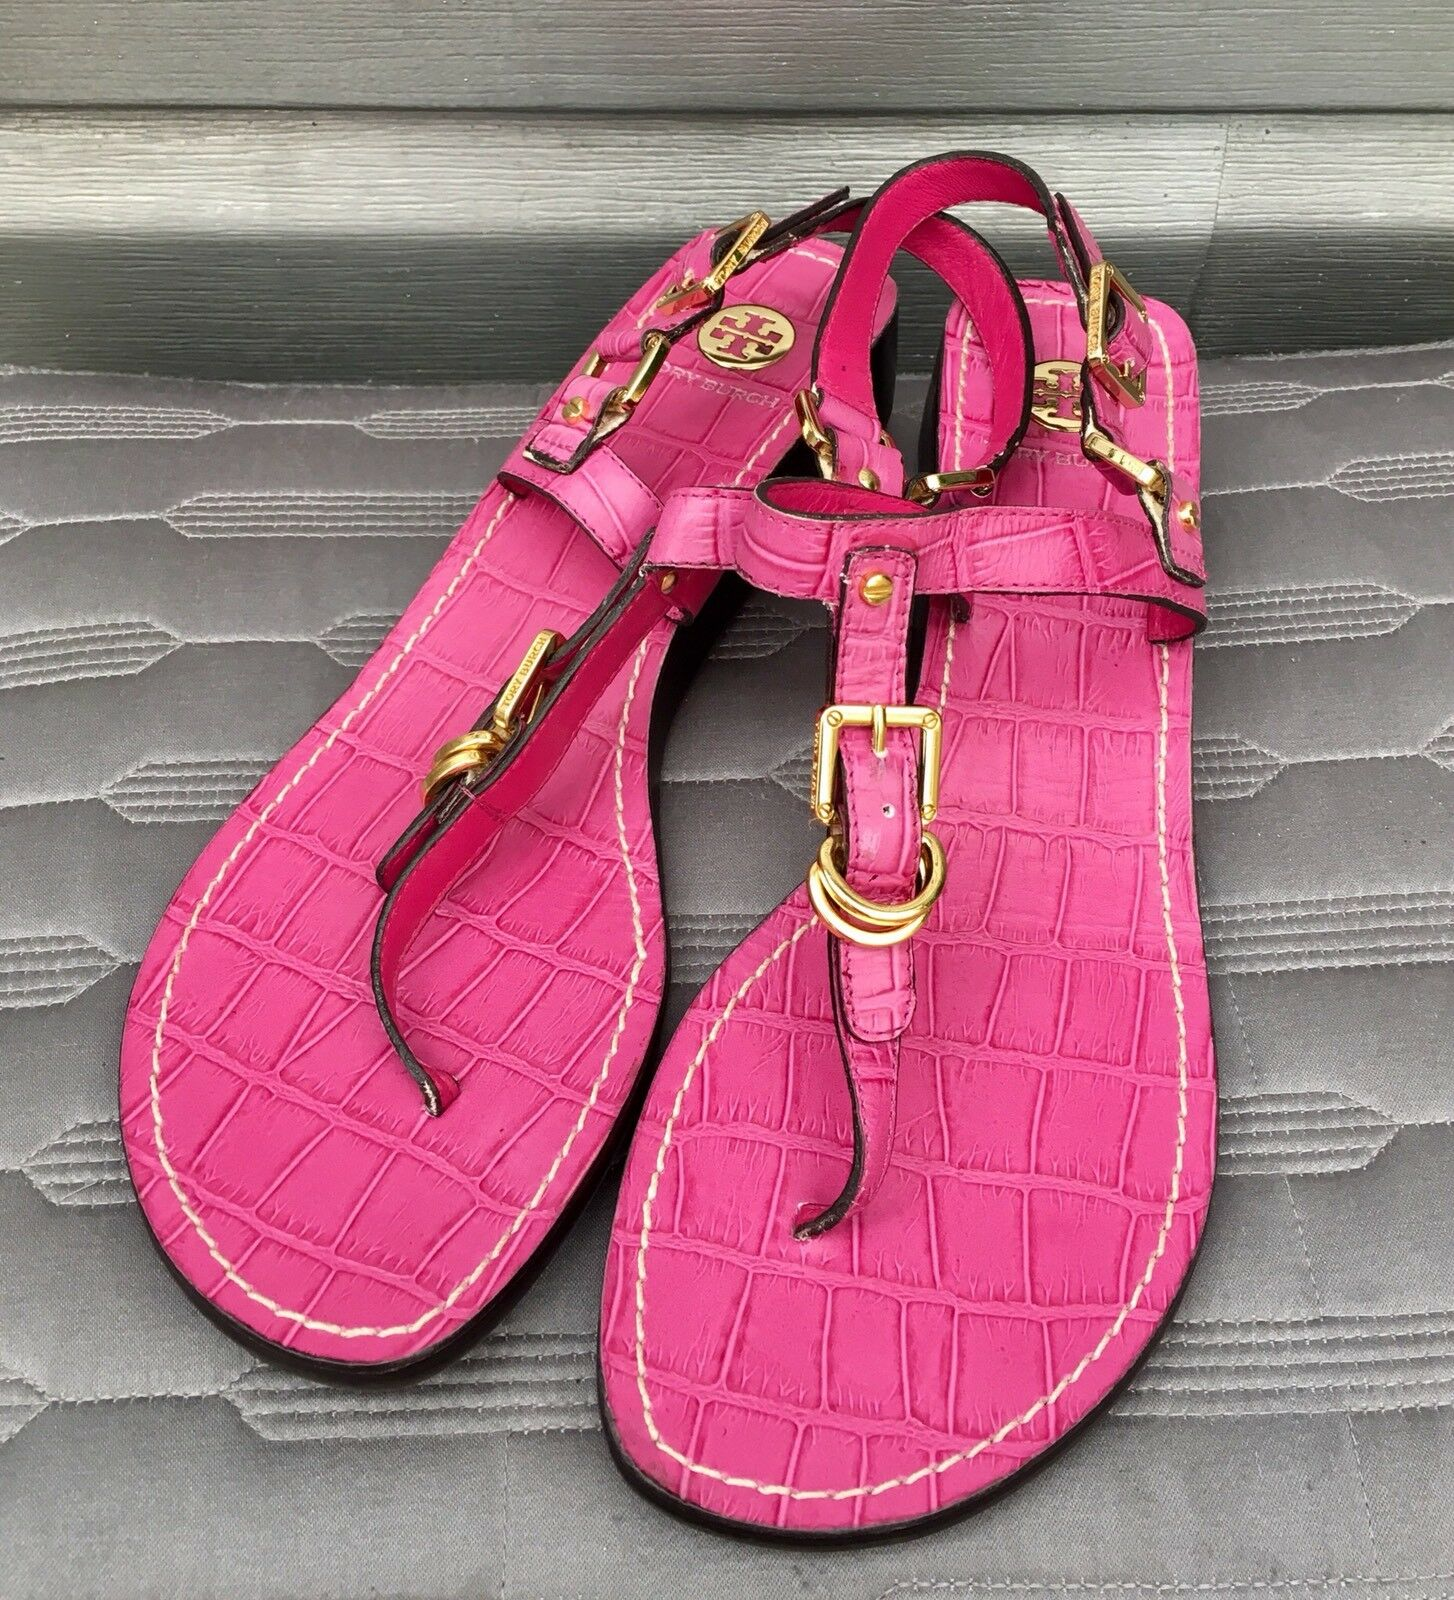 TORY BURCH Pink Thong Crocodile Leather Kitten Wedge Sandals